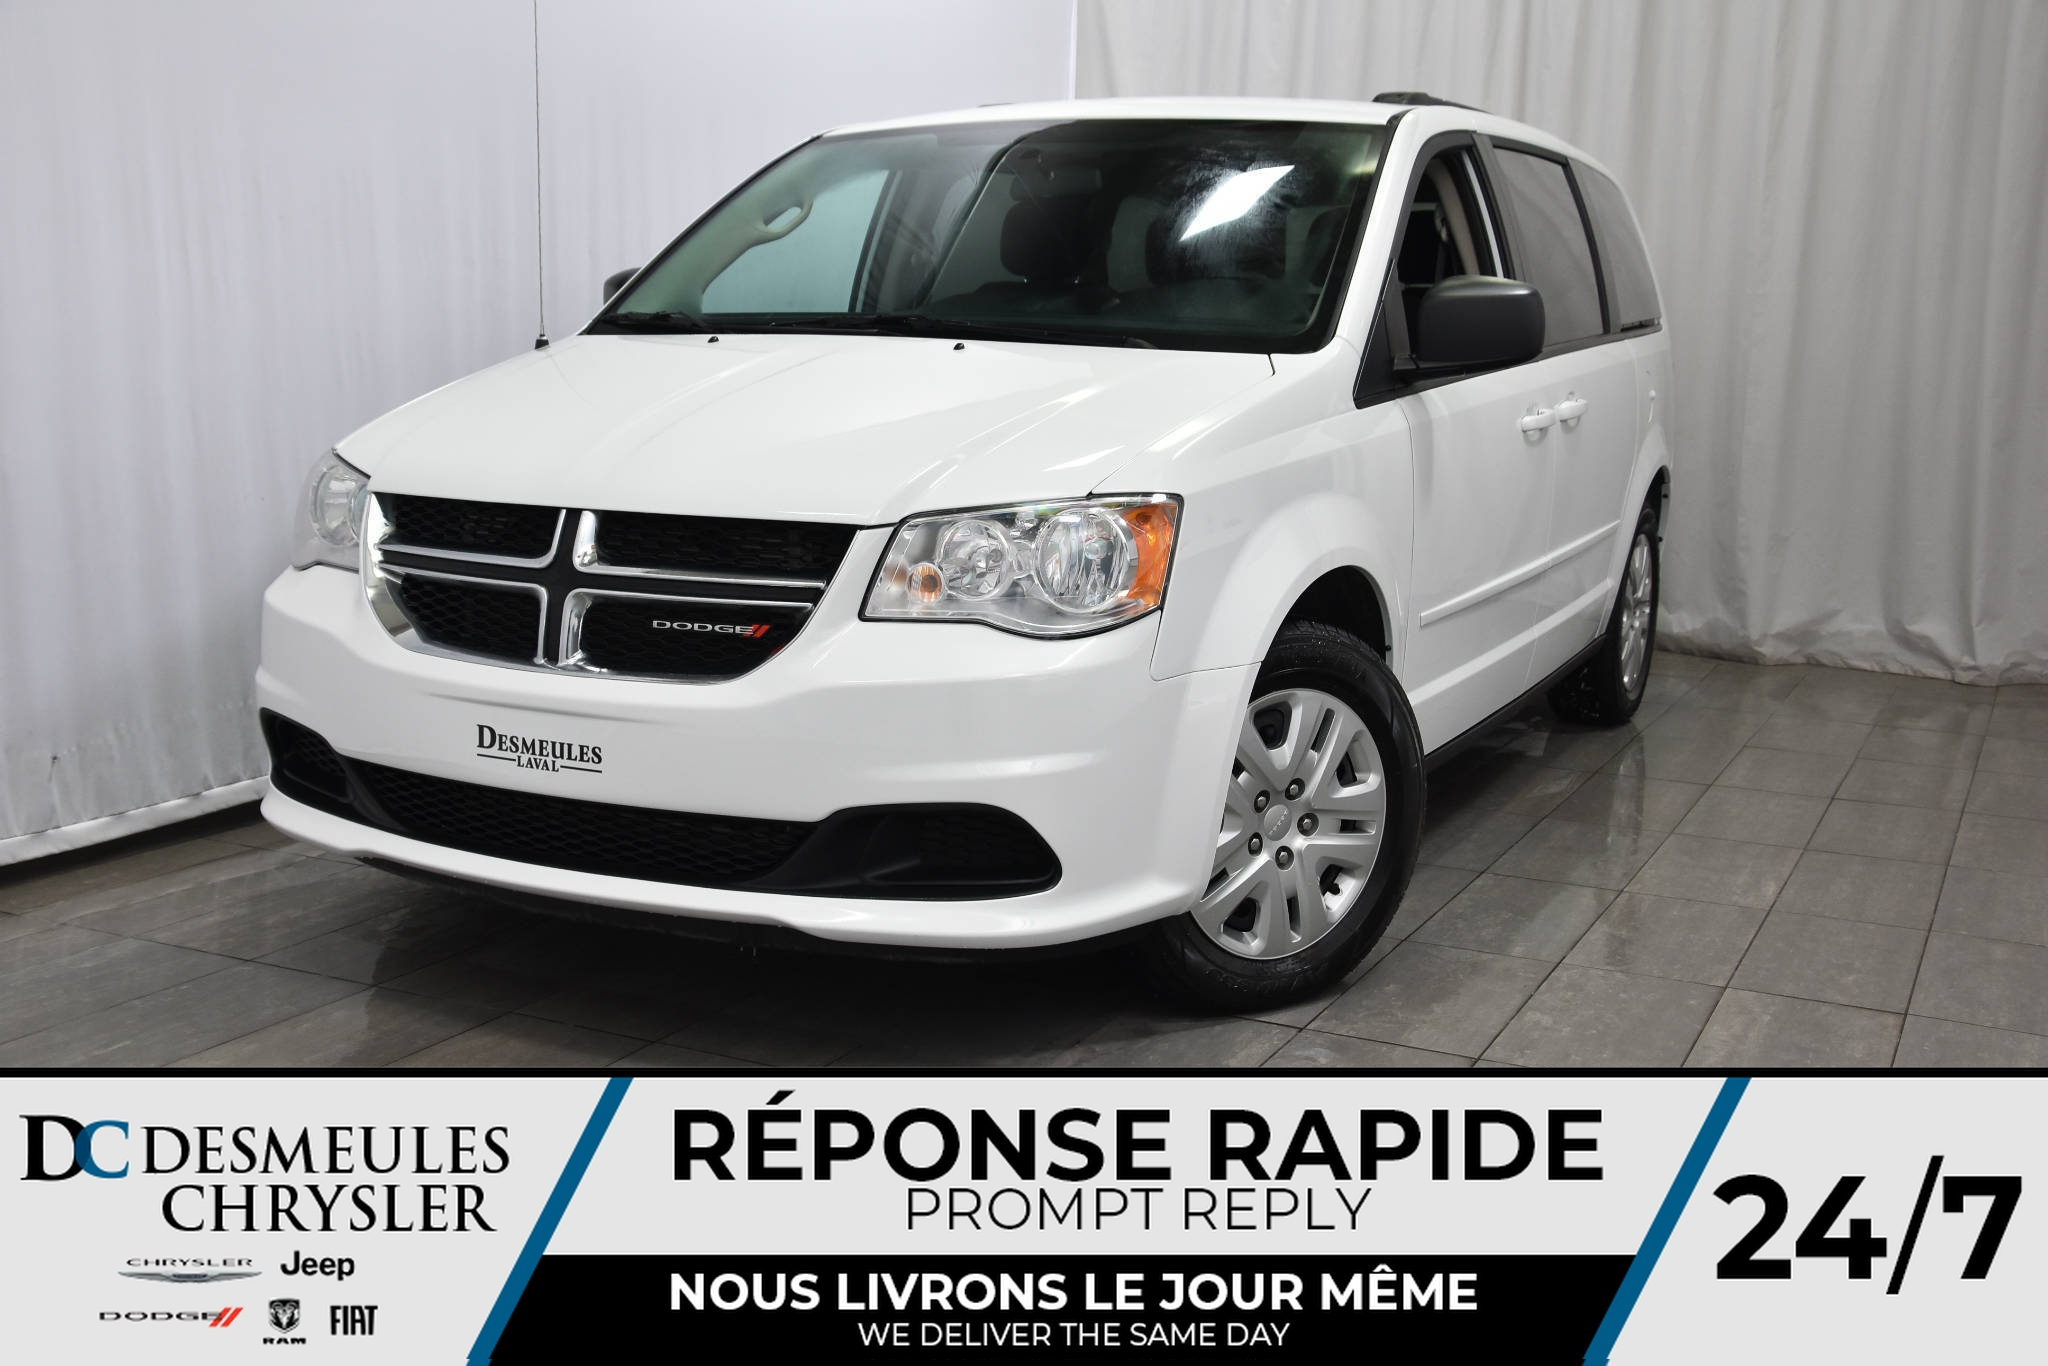 2017 Dodge Grand Caravan  - Desmeules Chrysler